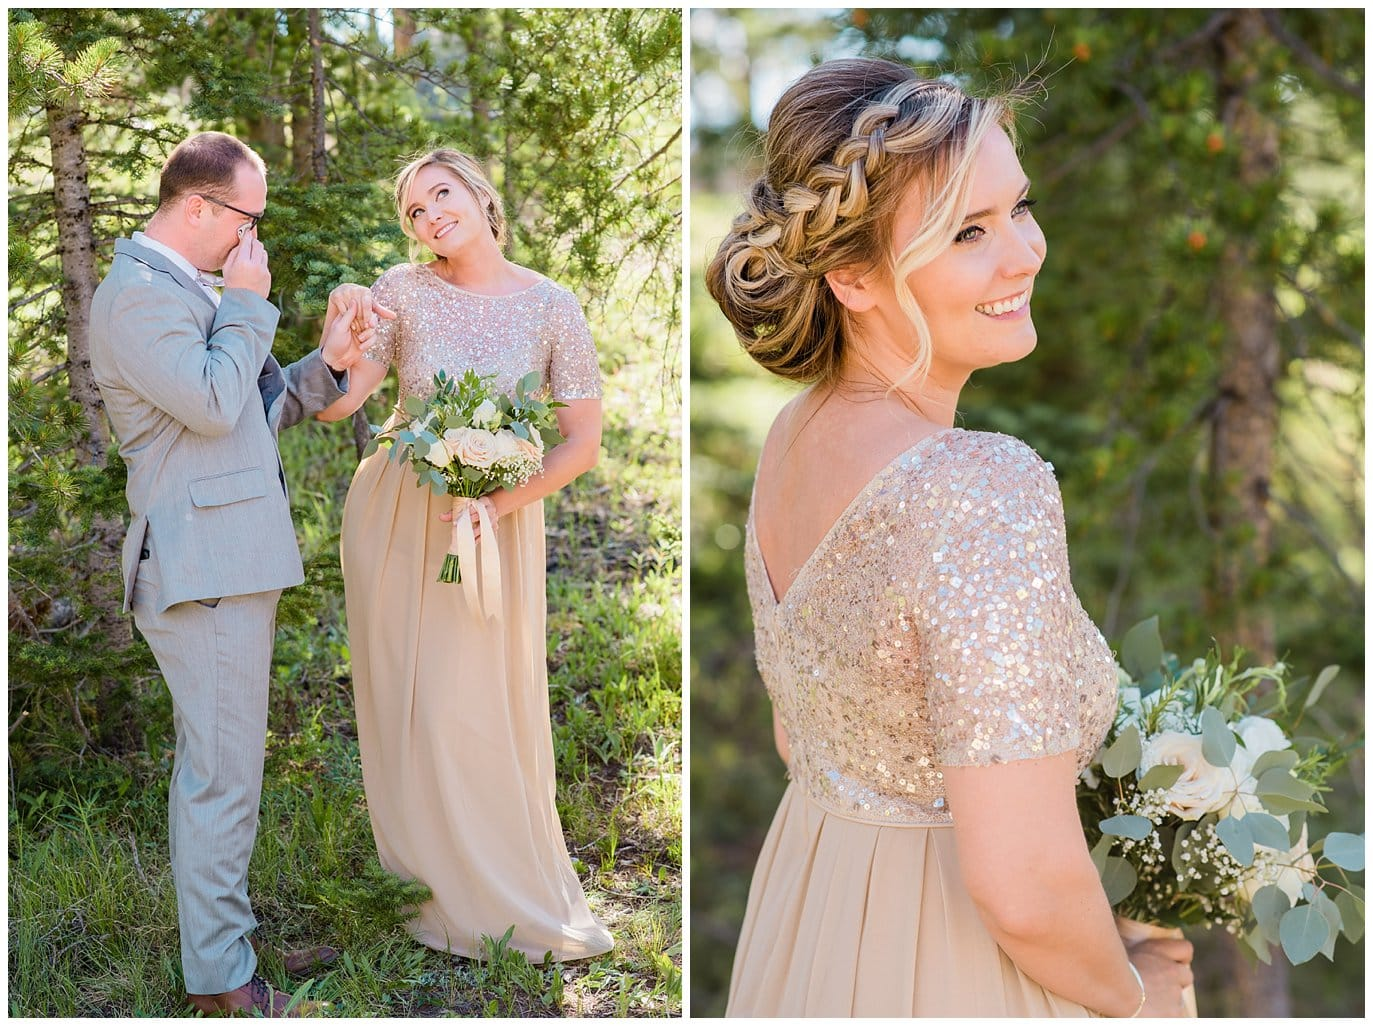 sparkly top and nude skirt bridesmaid dress at Summer Piney River Ranch wedding by Vail wedding photographer Jennie Crate, Photographer